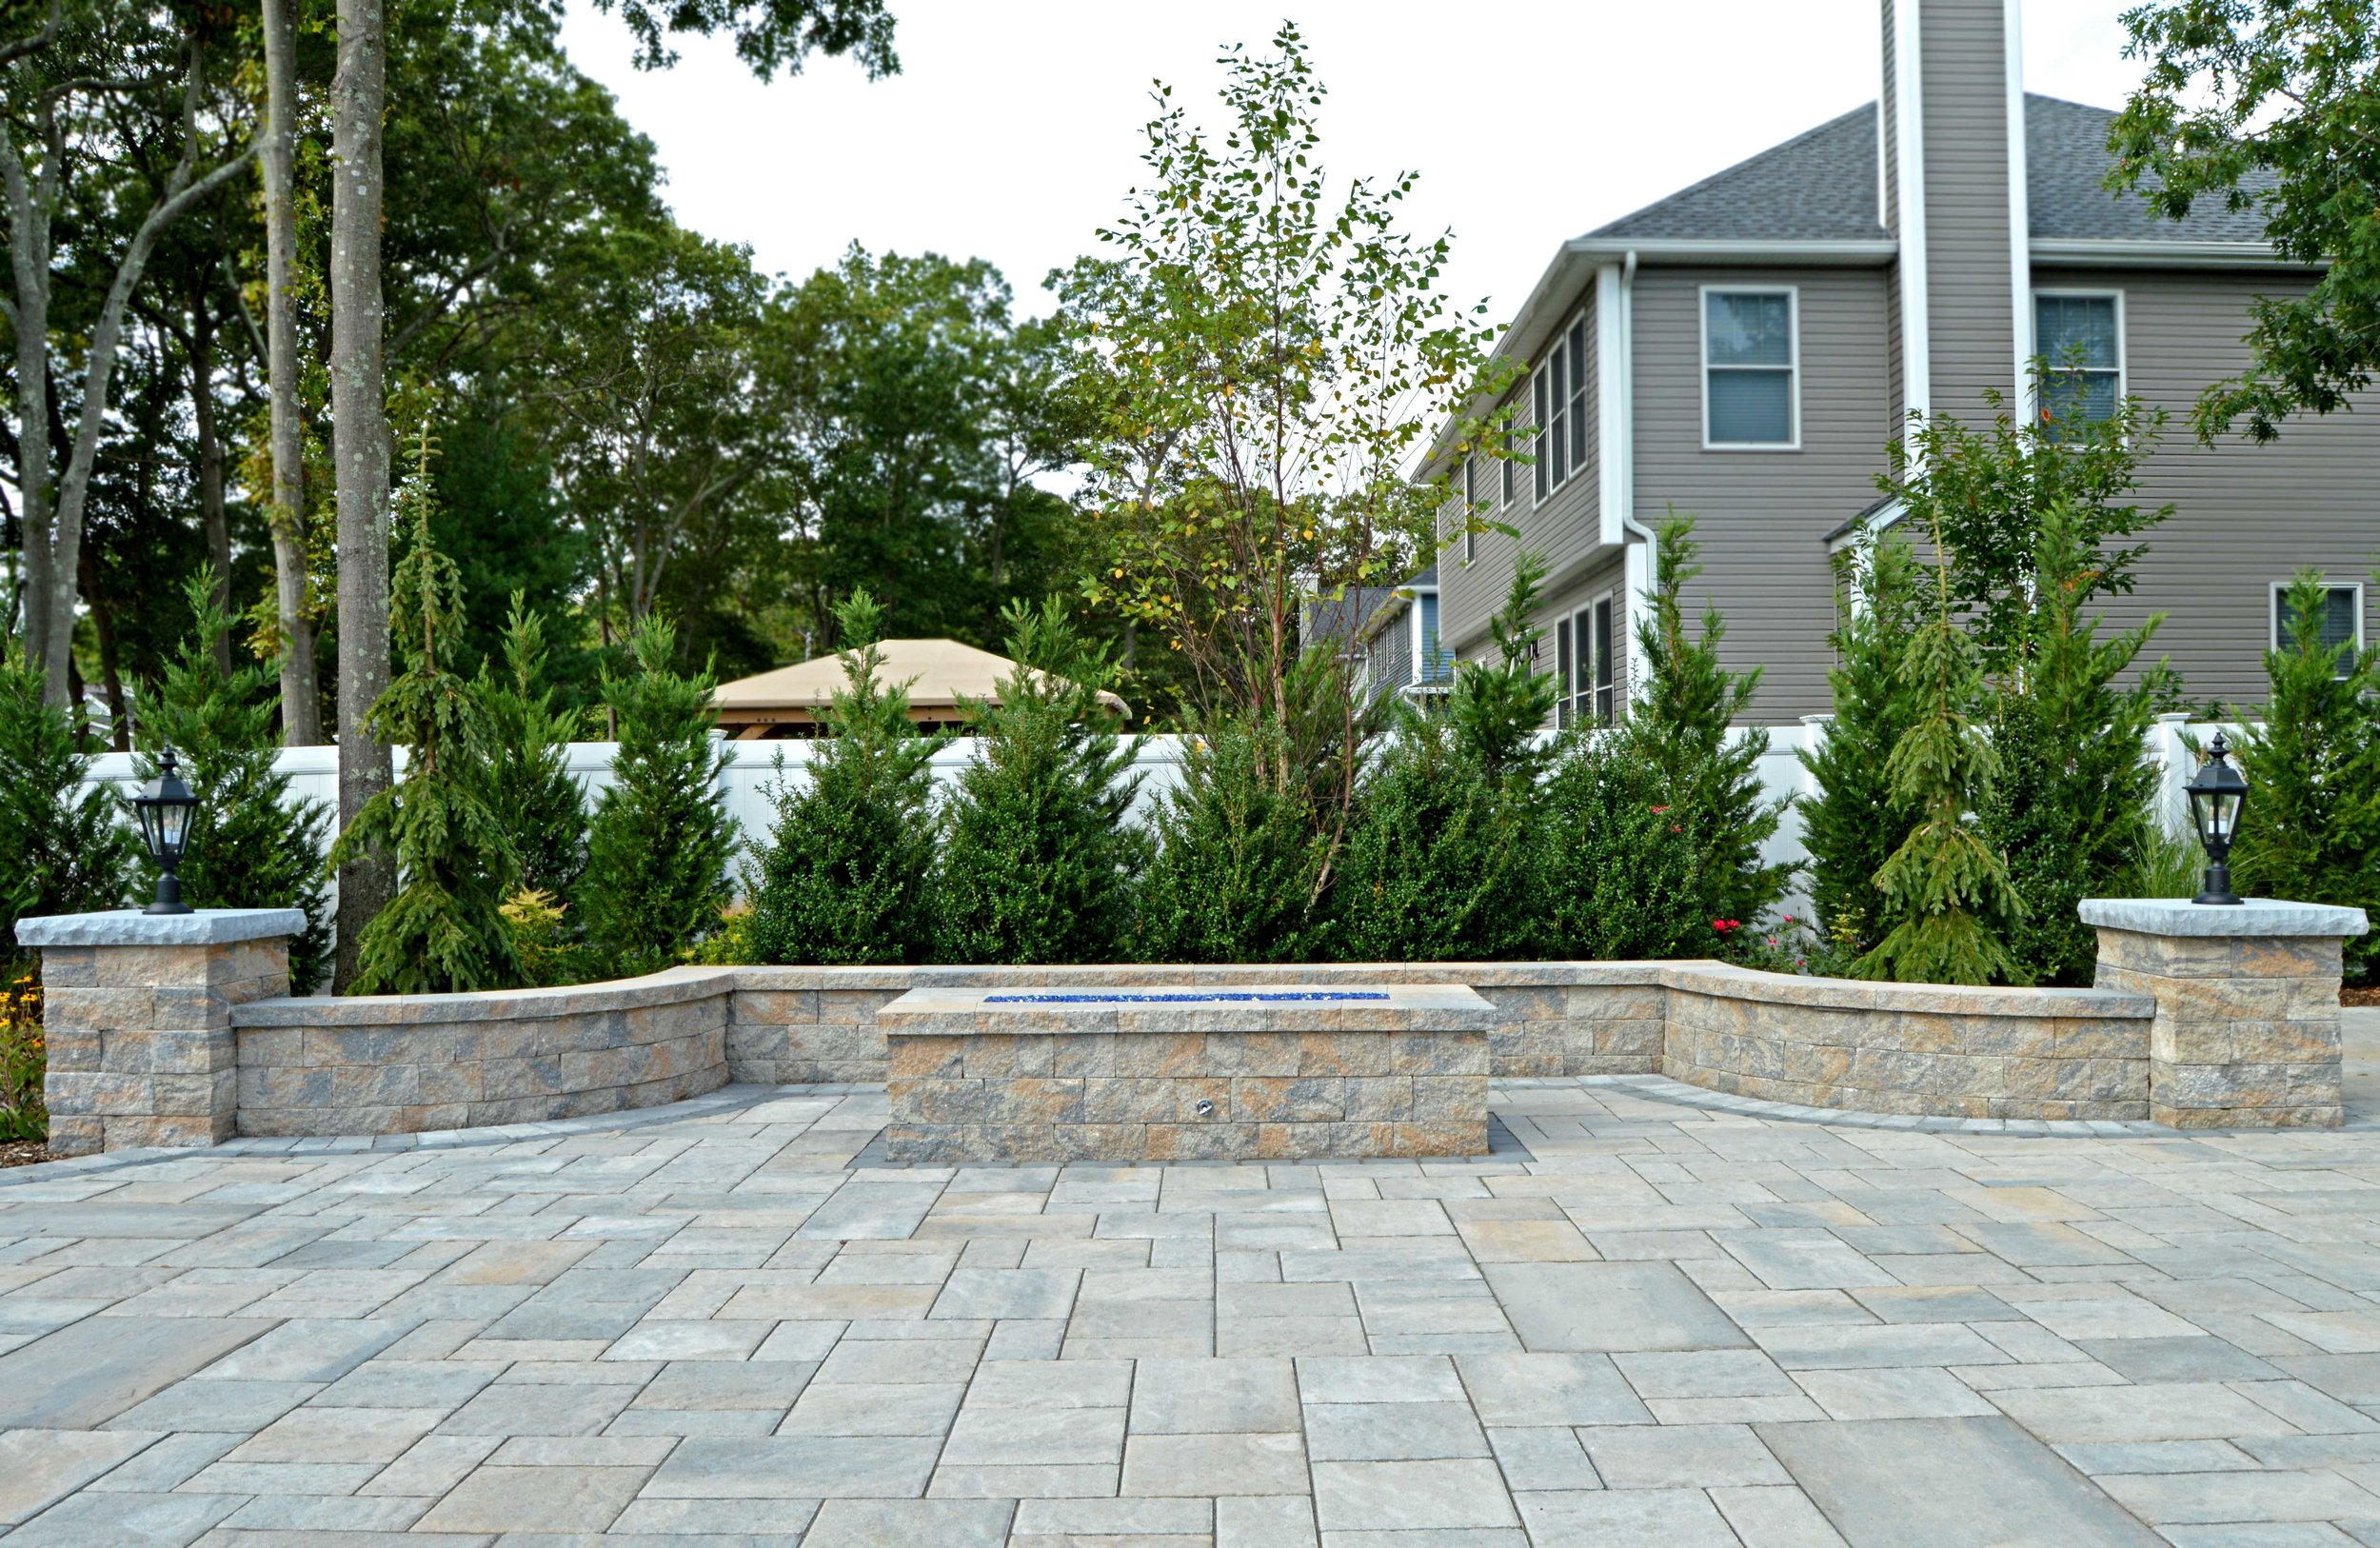 Retaining wall and seating in Long Island, NY